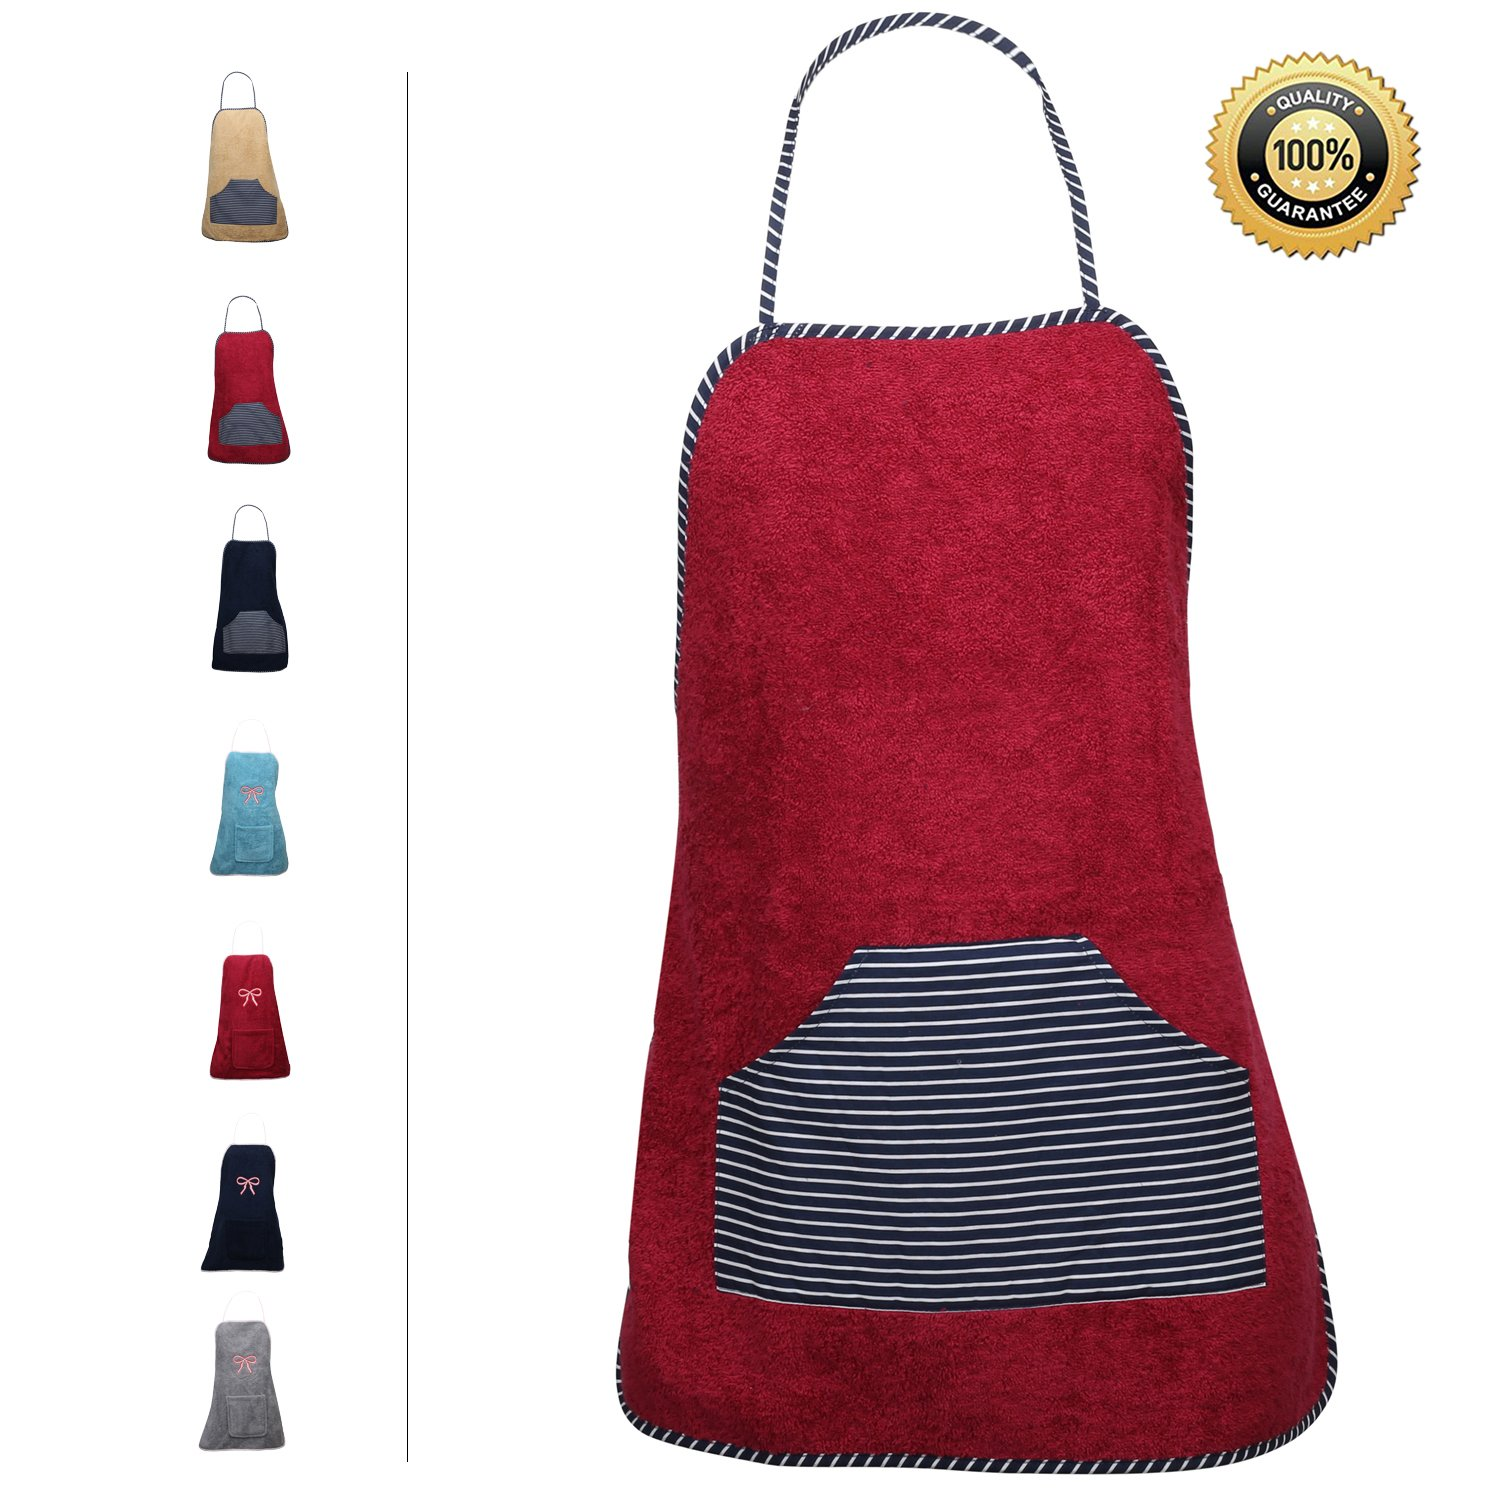 Terry Cloth Apron with Convenient Pocket Durable Stripe Kitchen and Cooking Apron for Women/Men Professional Stripe Chef Apron for Cooking, Grill and Baking (Maroon - Striped Pocket, Terrycloth)